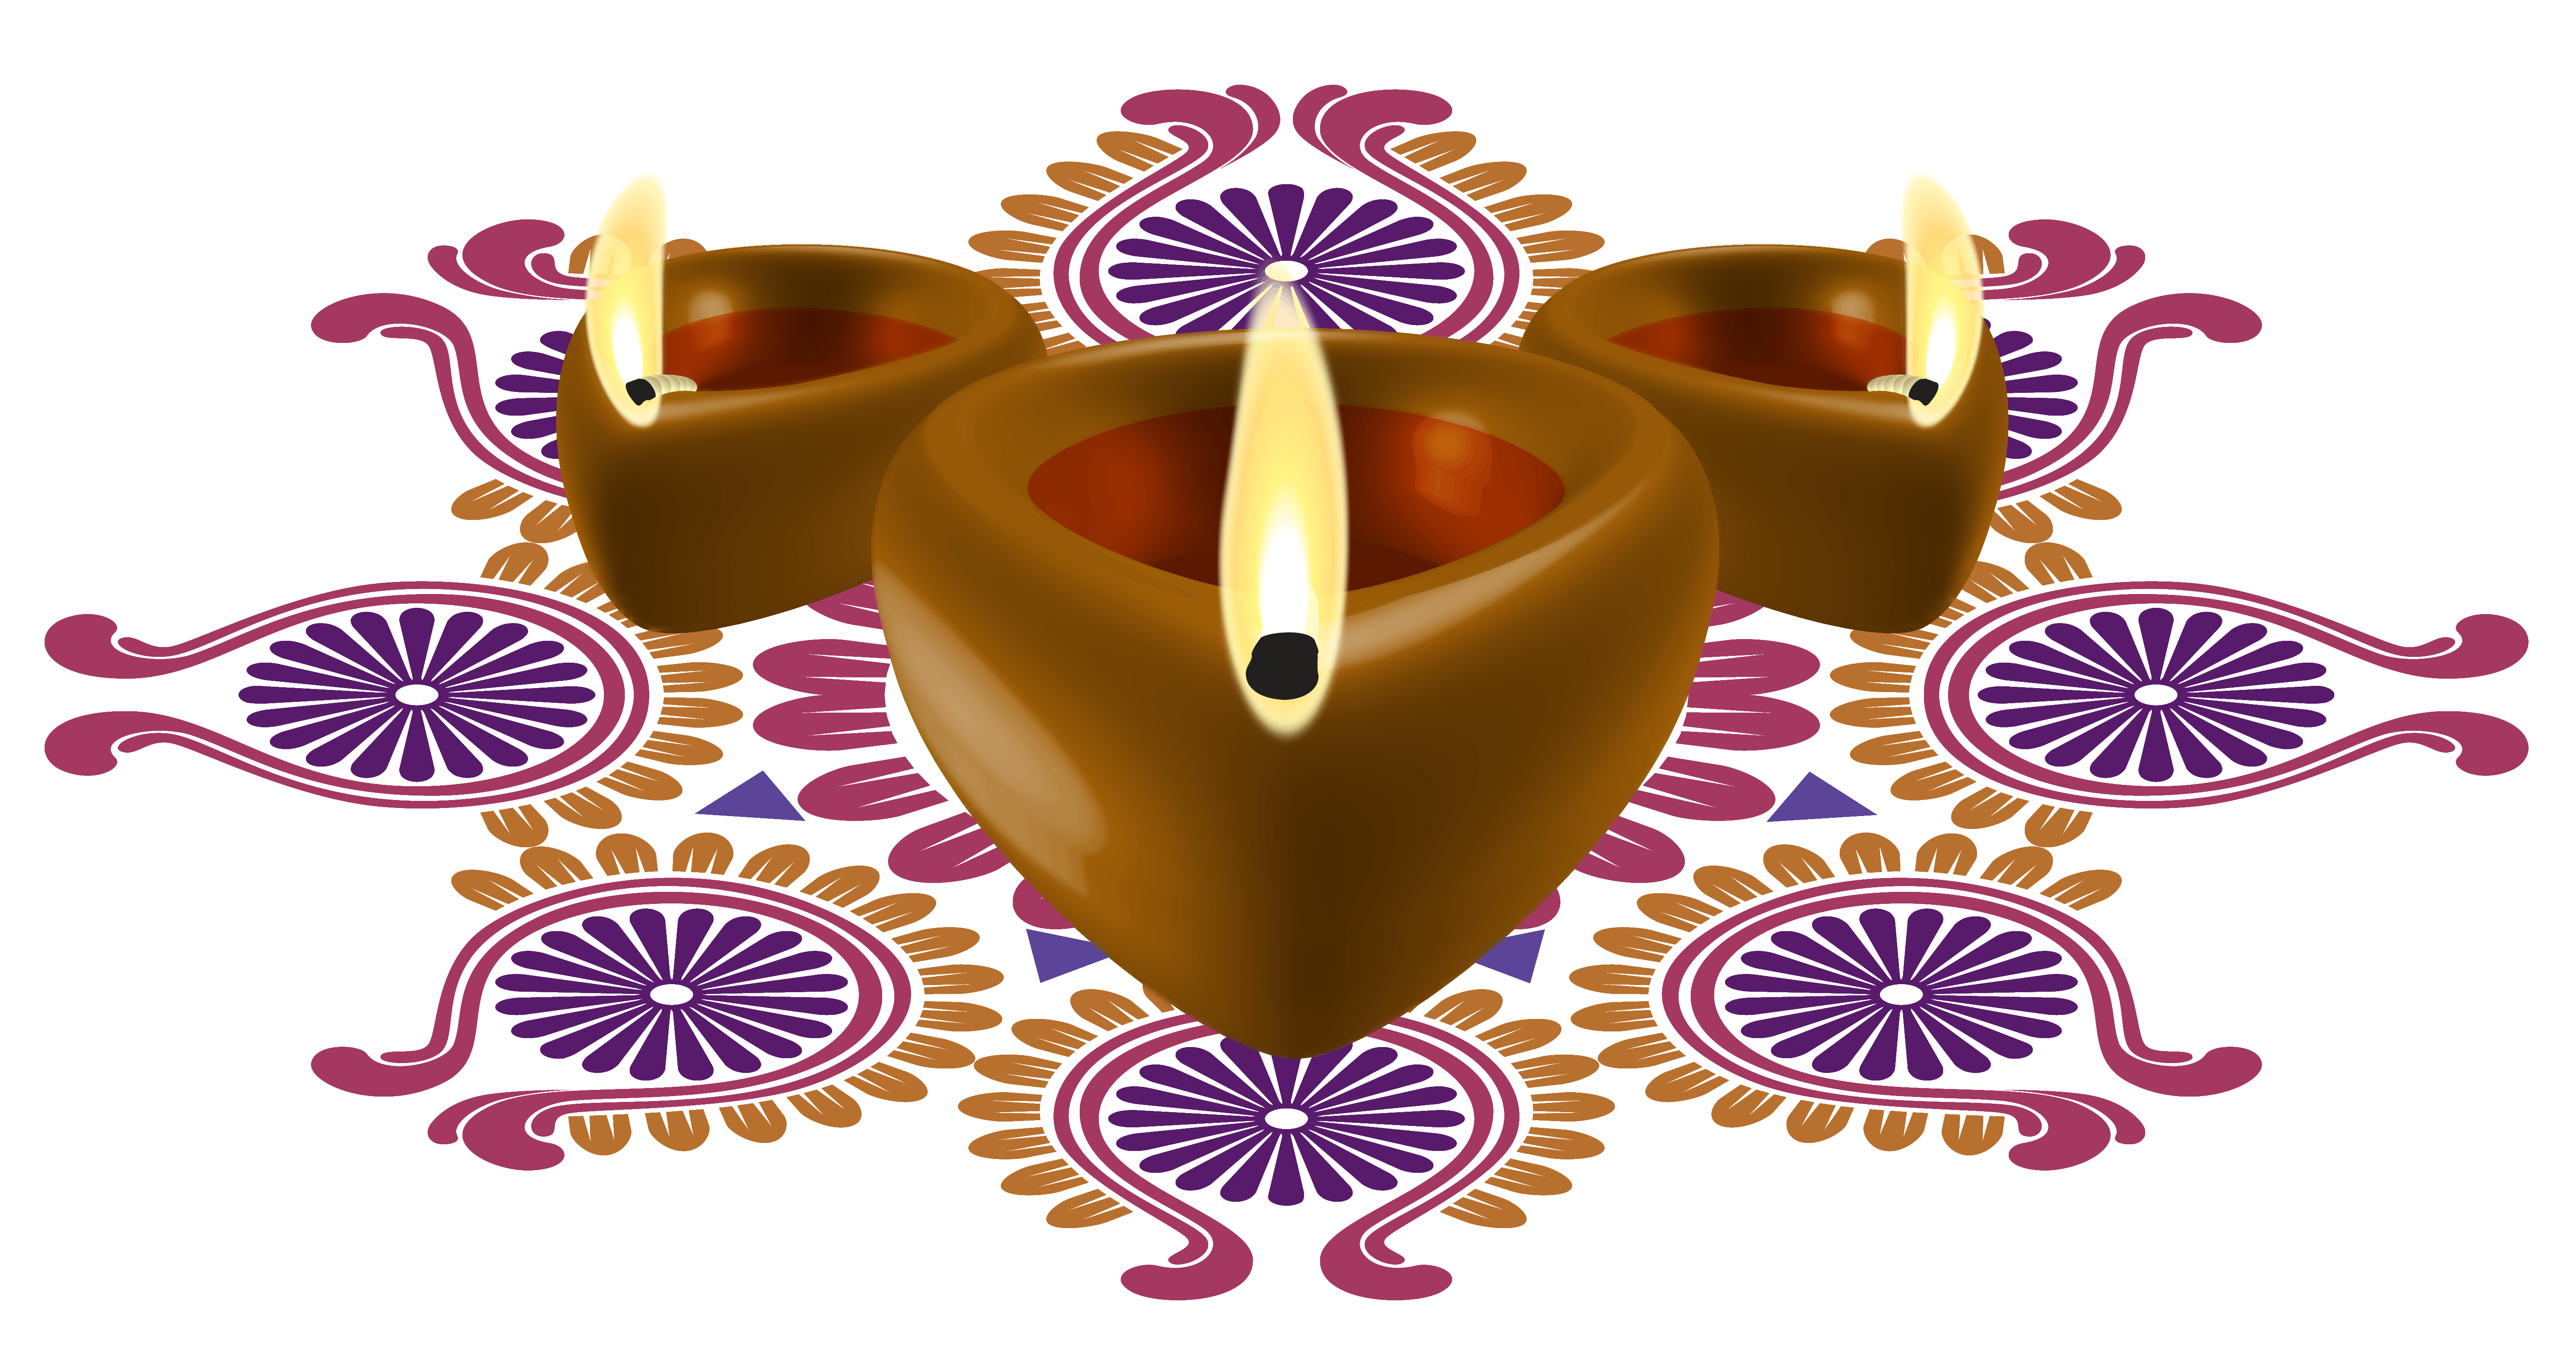 Happy diwali decorative candles. Festival clipart thaipusam